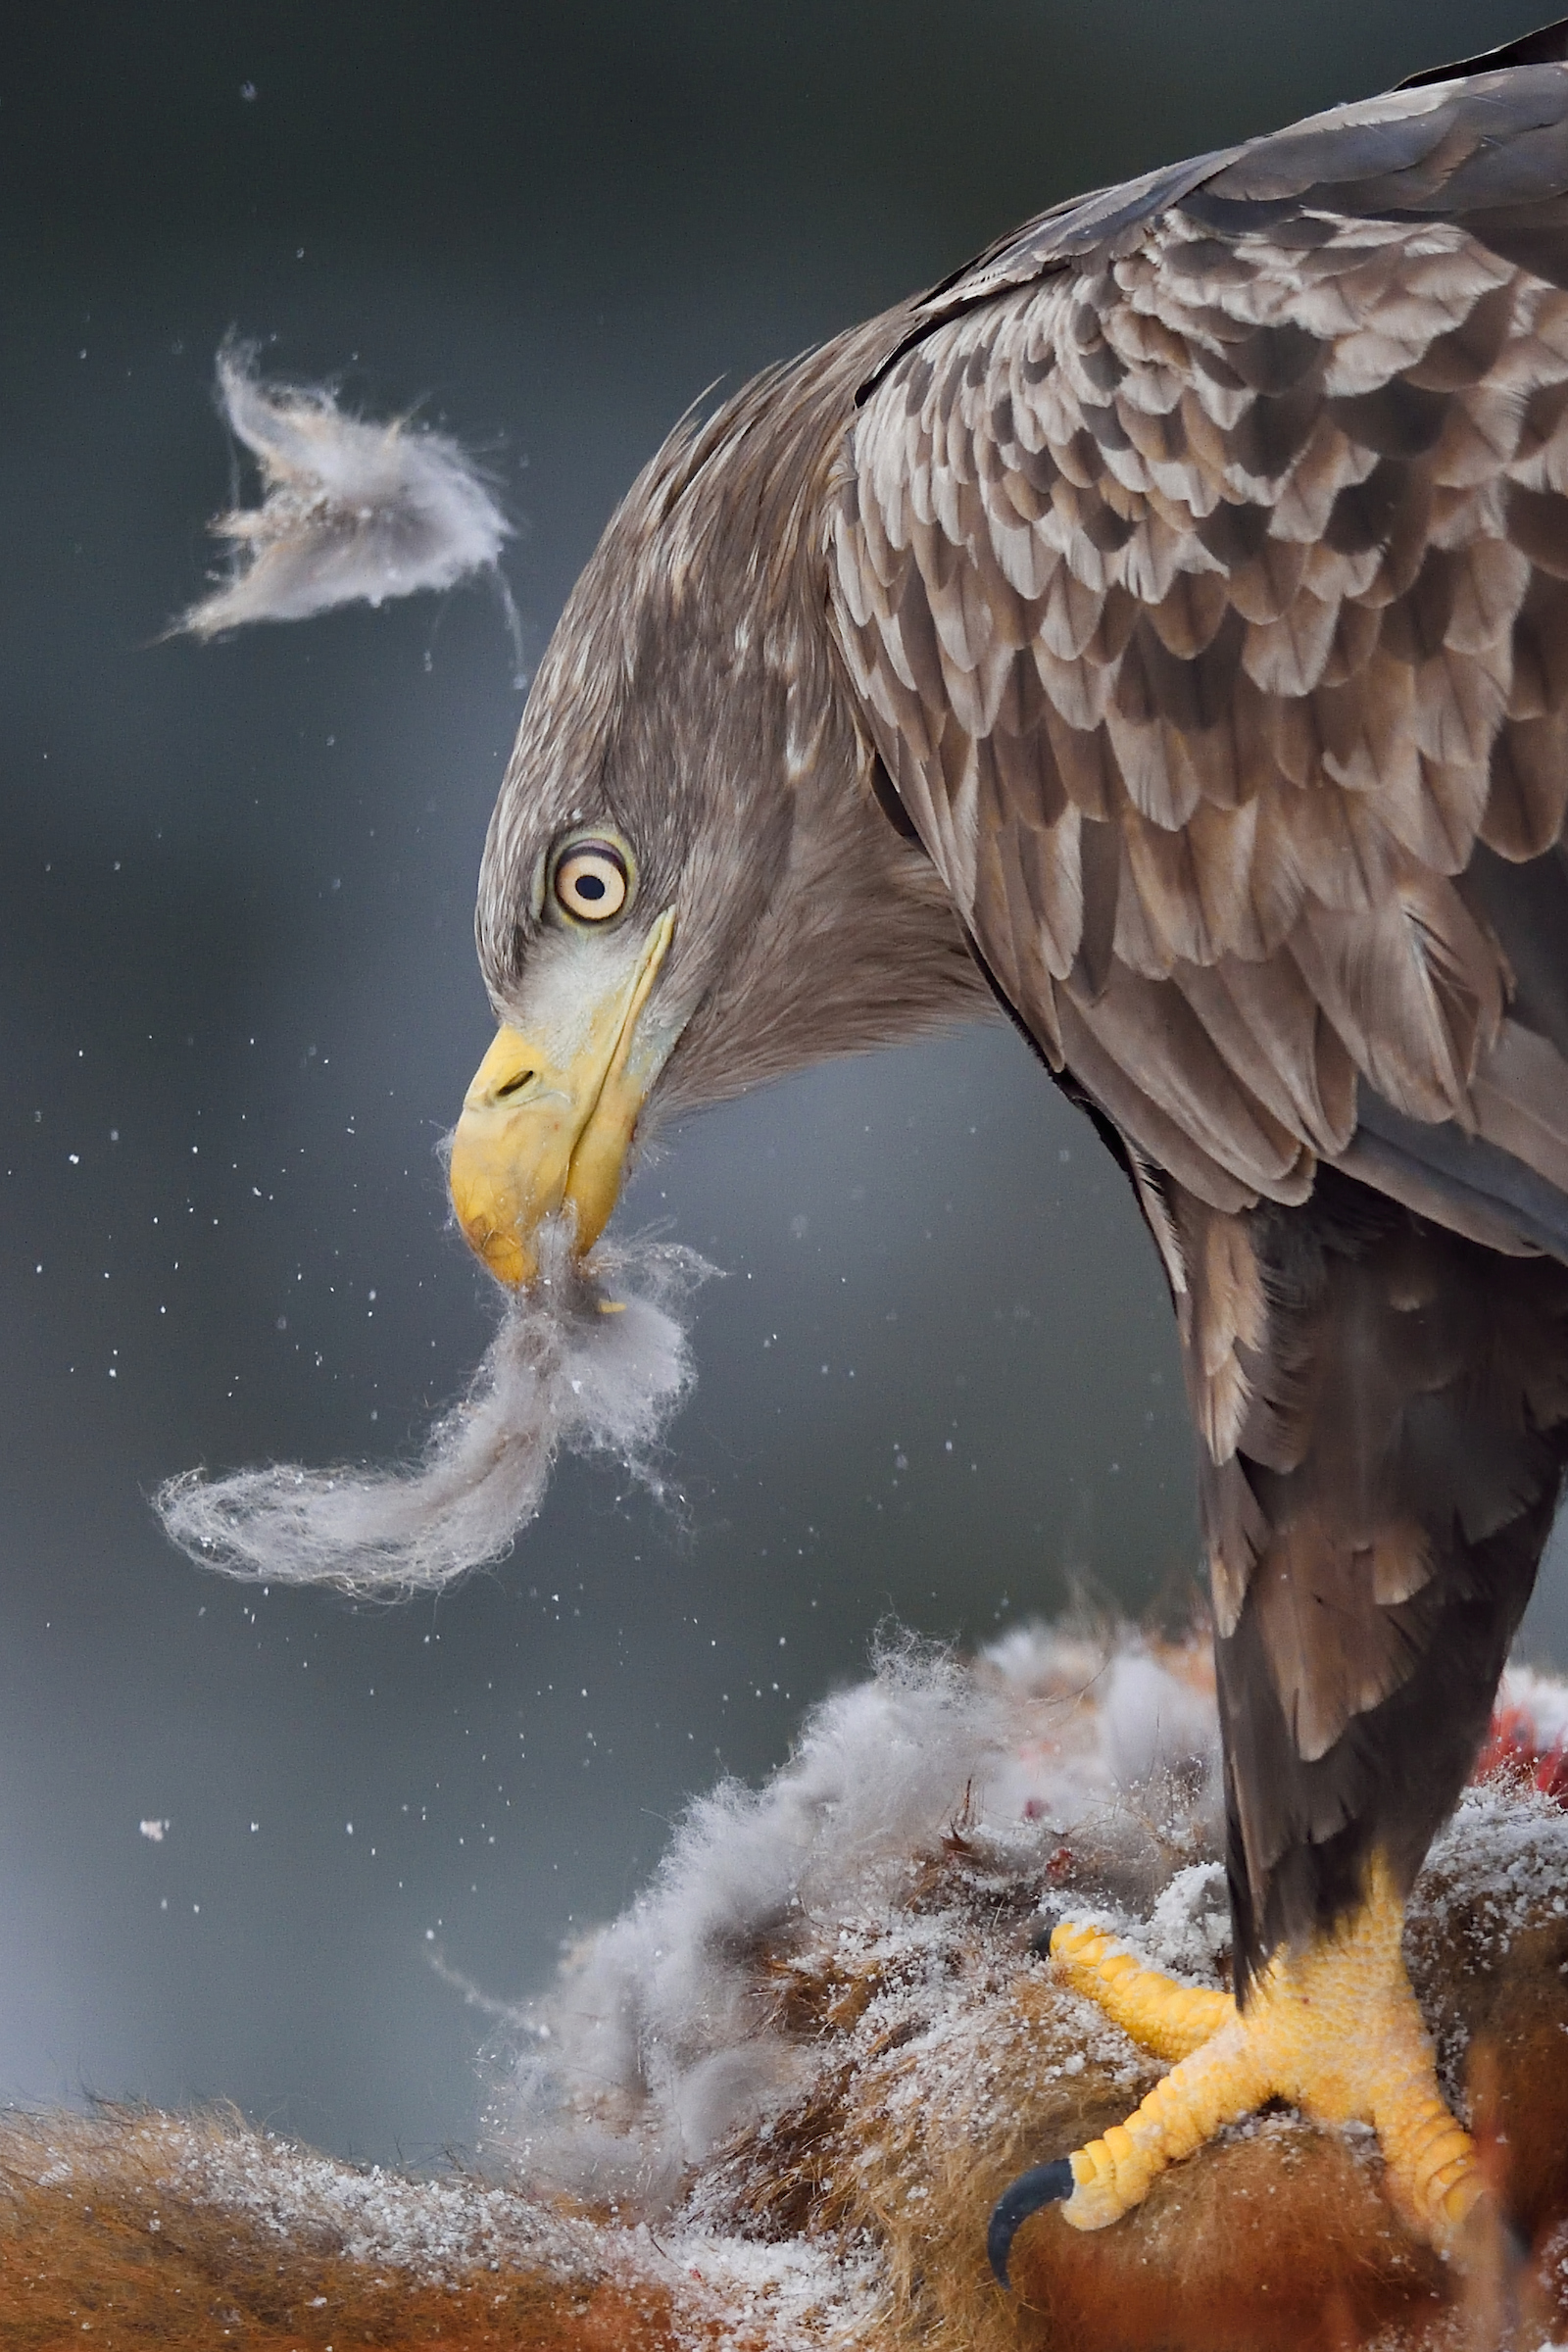 White-tailed eagle feeding on carcass